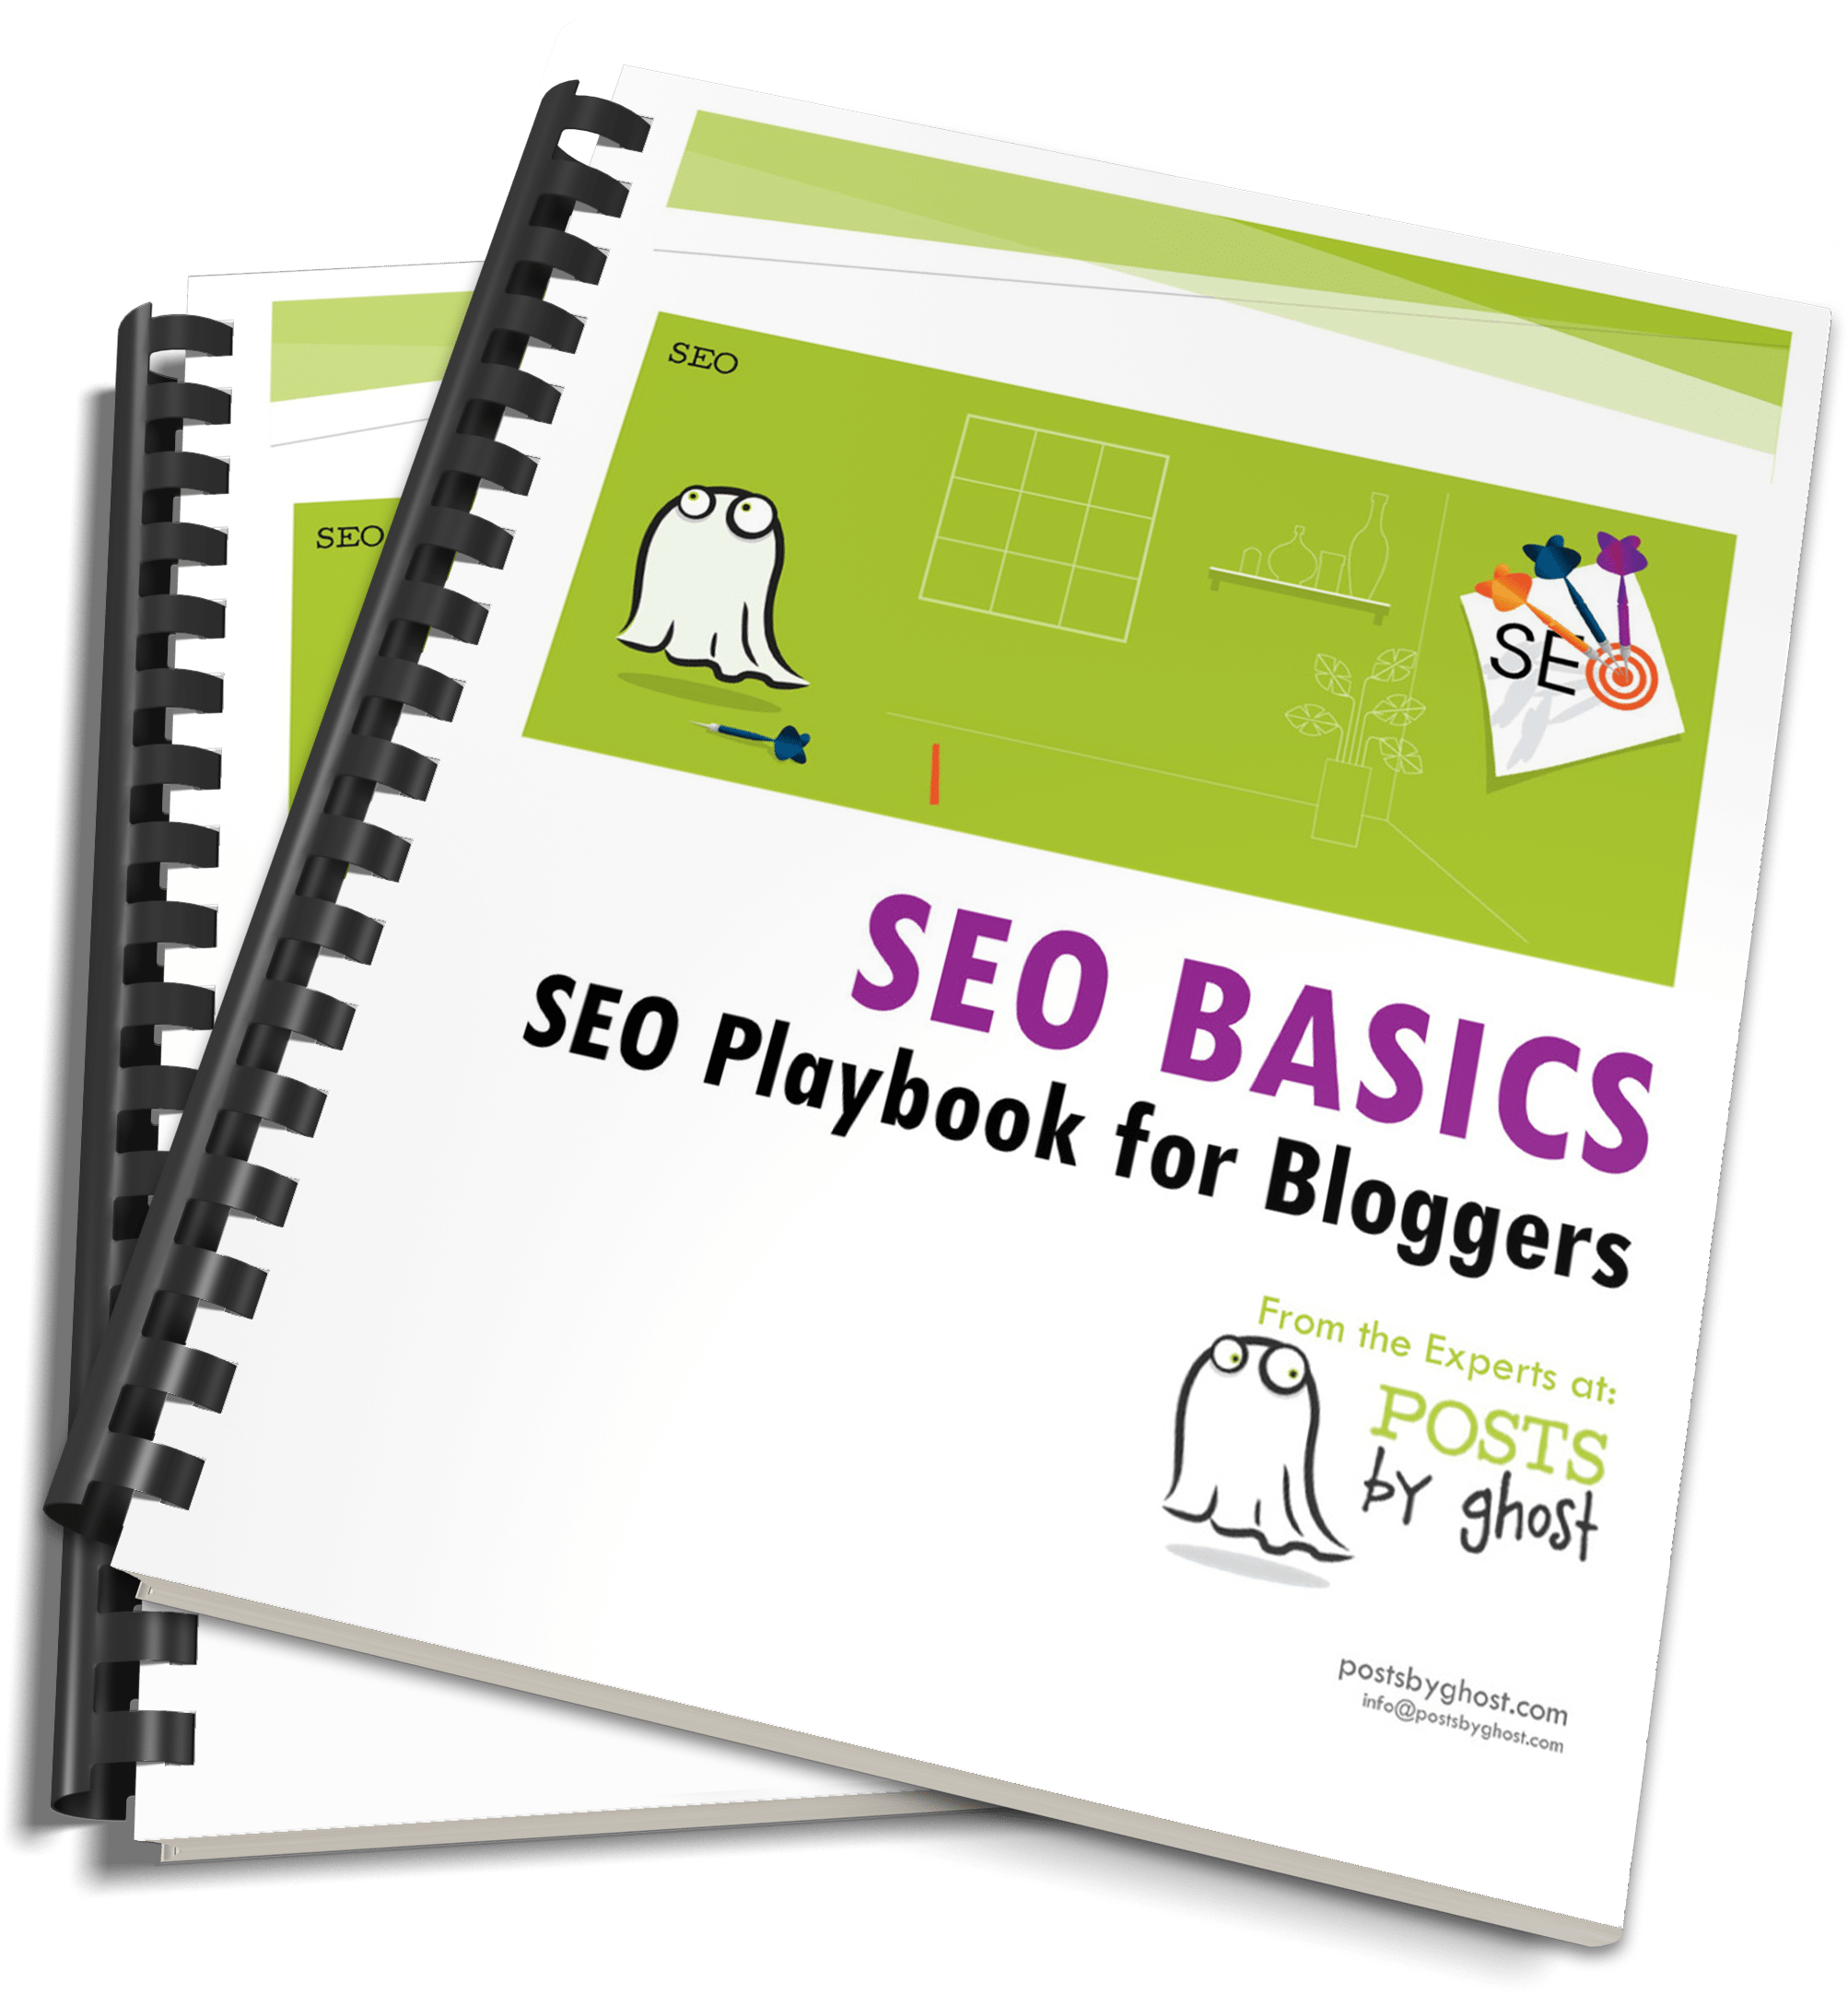 SEO Basics: The SEO Playbook for Bloggers from Posts By Ghost